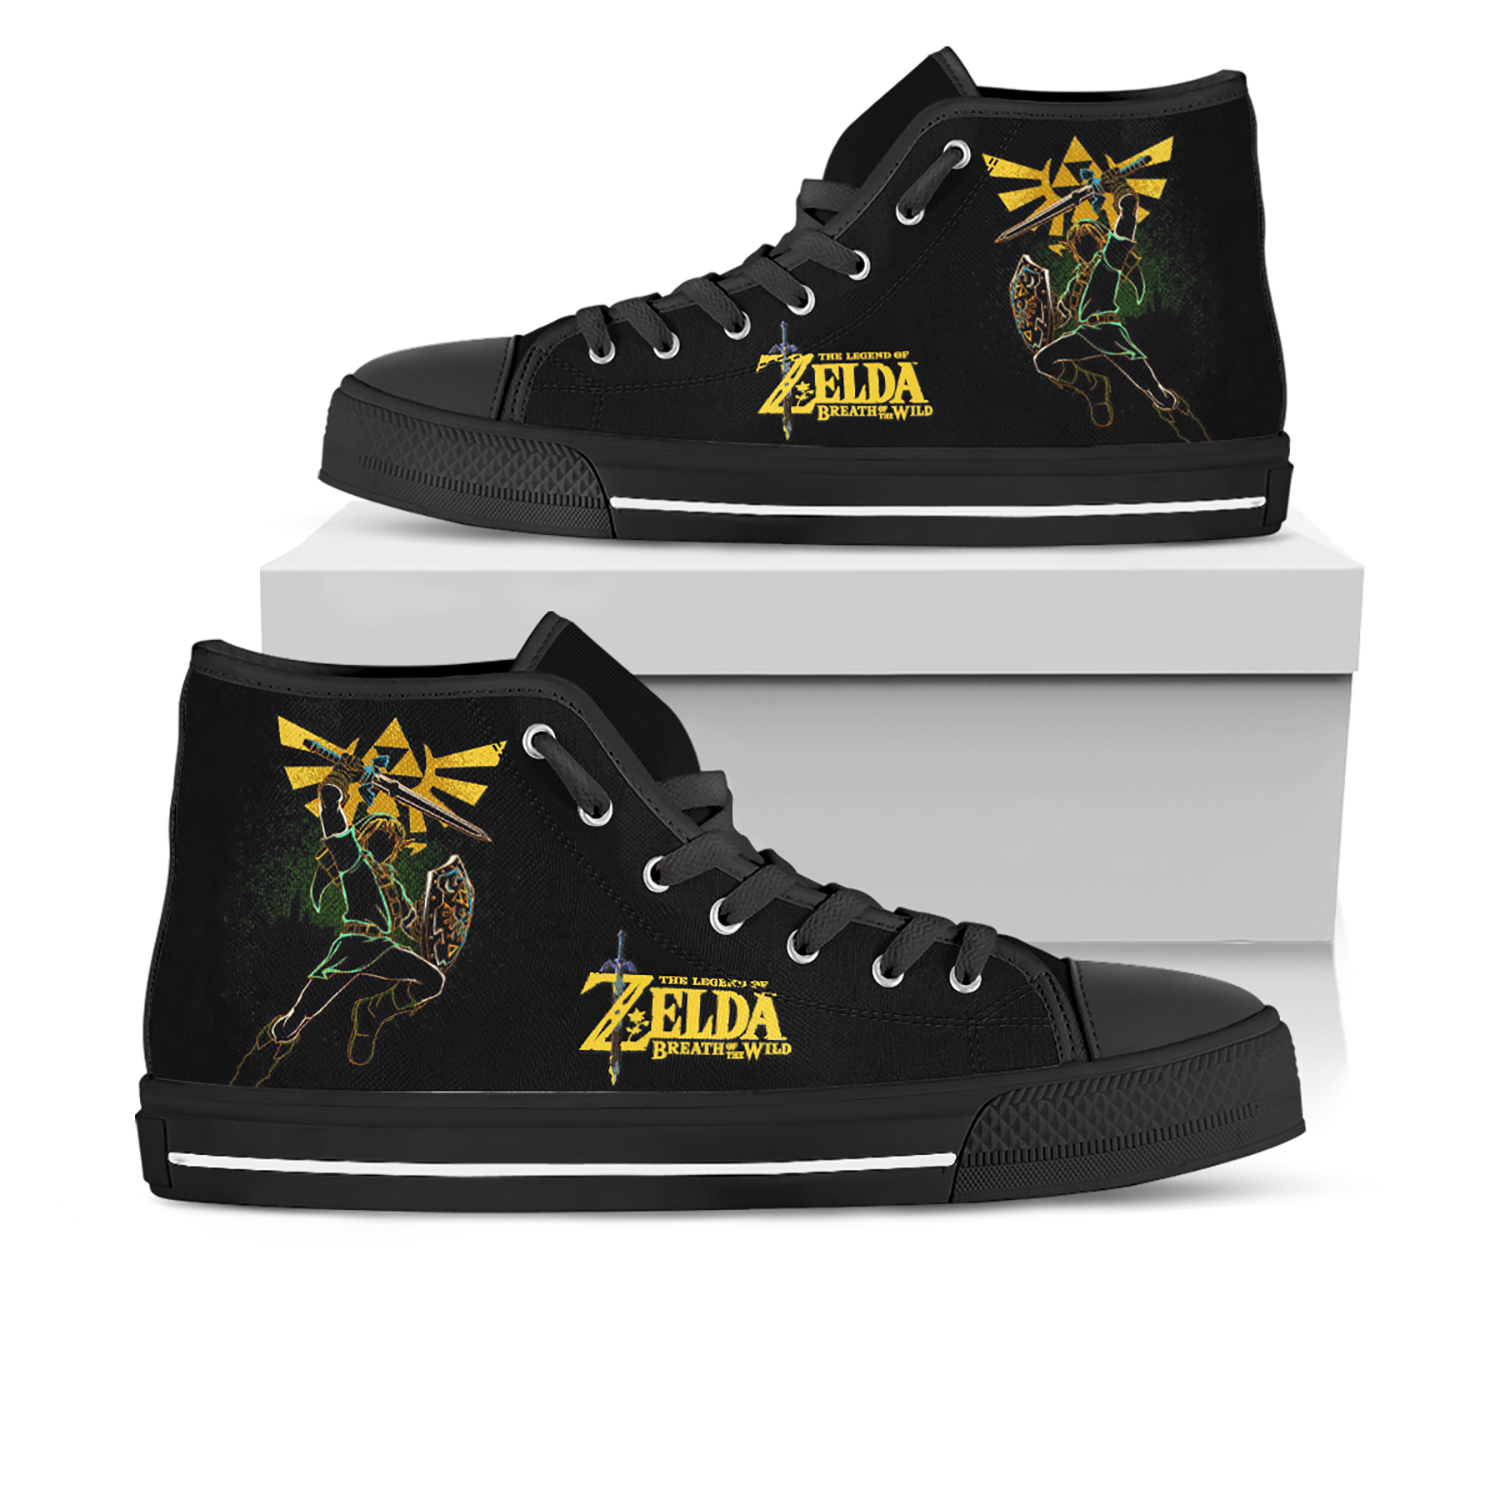 9689ca8a07e Zelda sneaker running shoes sneakers look like converse trainers ...